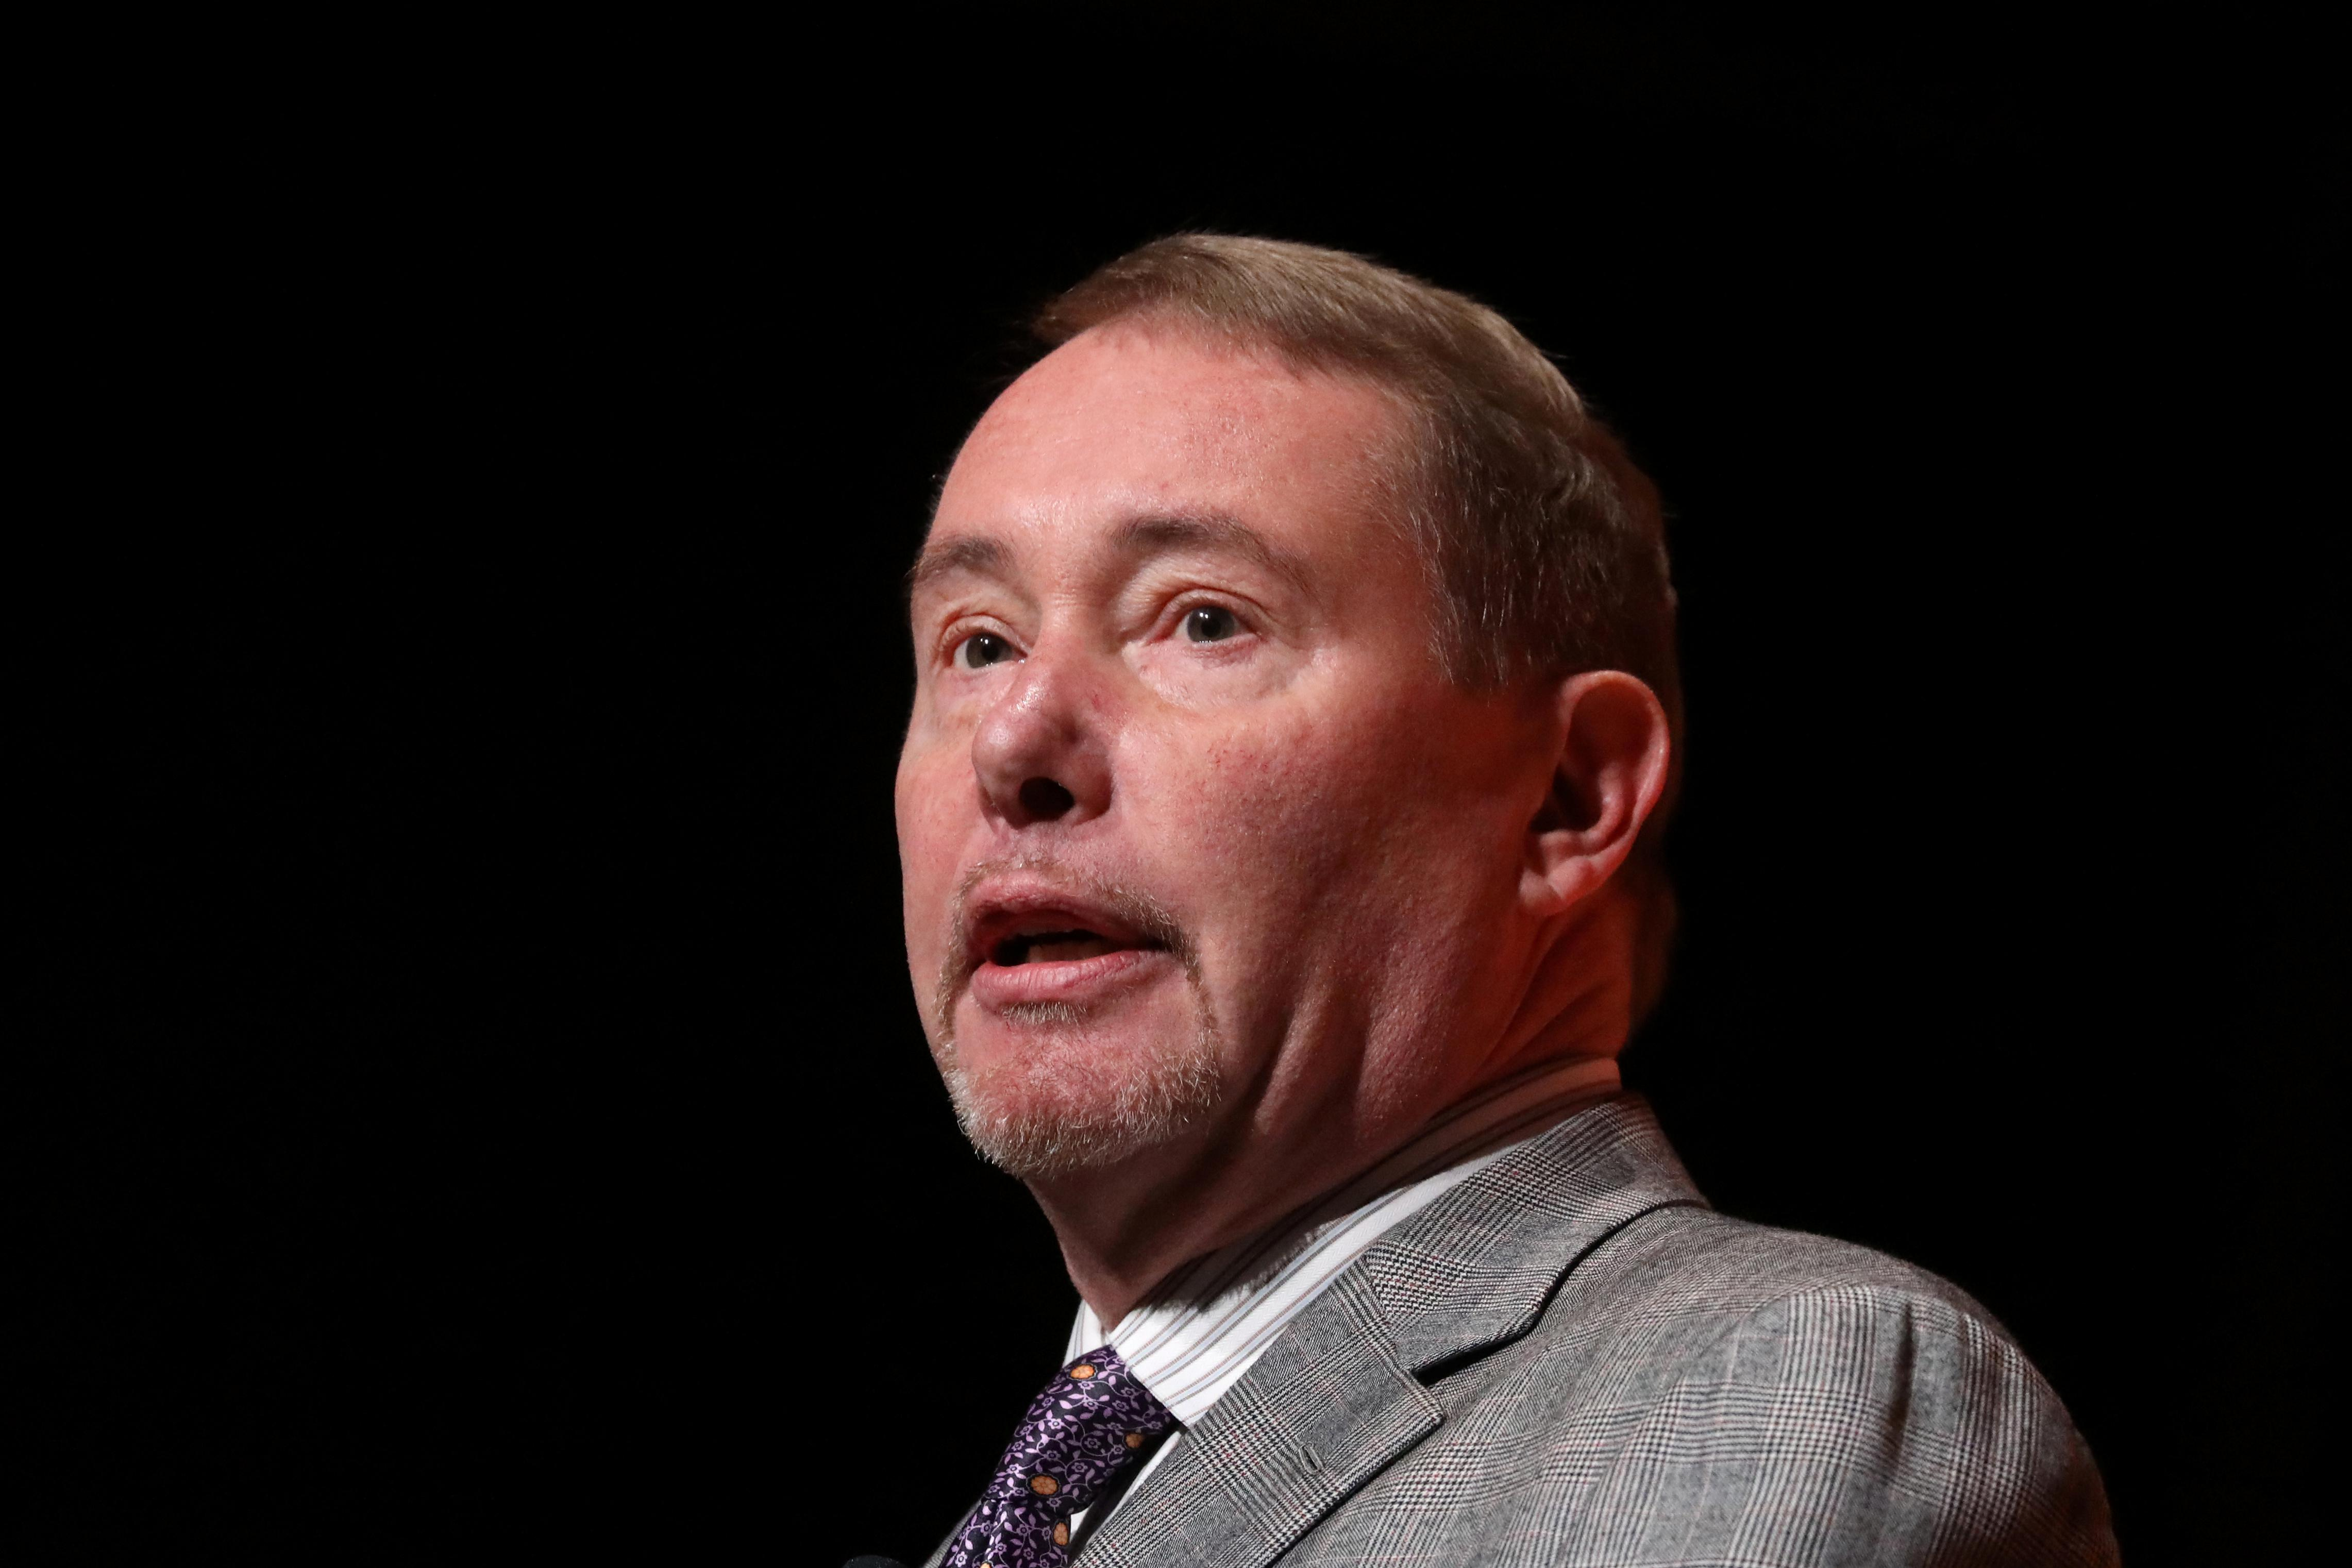 GUNDLACH WARNS: Stocks could 'take out' the March lows, economists' GDP forecasts are too optimistic - Yahoo Money